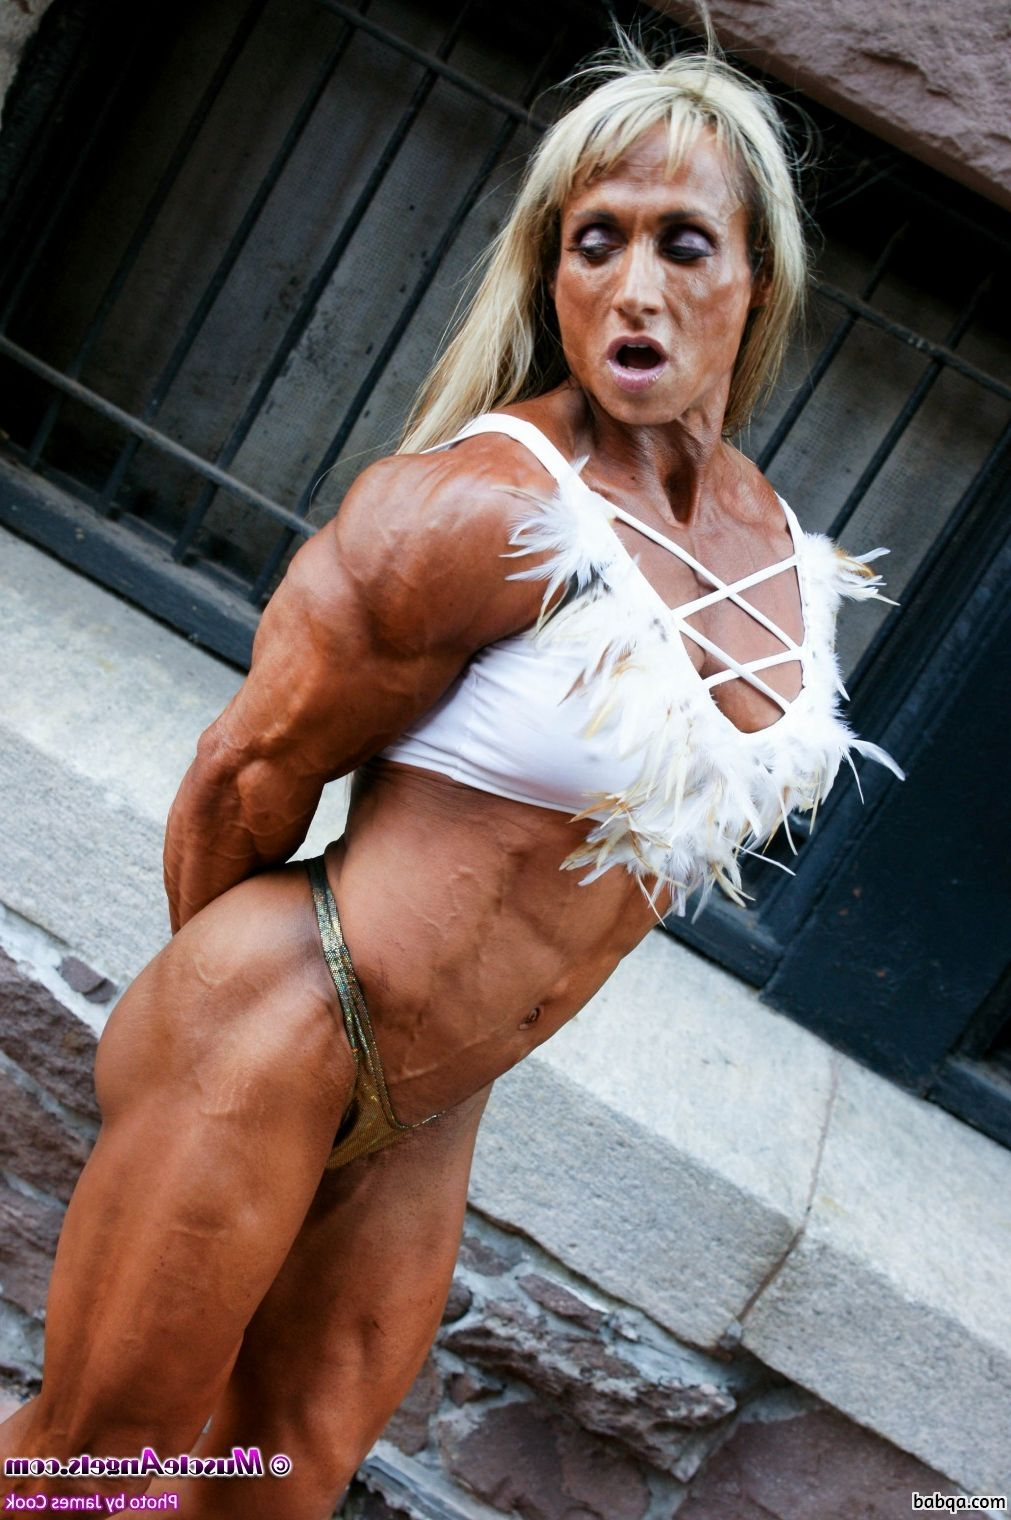 hot babe with strong body and muscle bottom image from linkedin